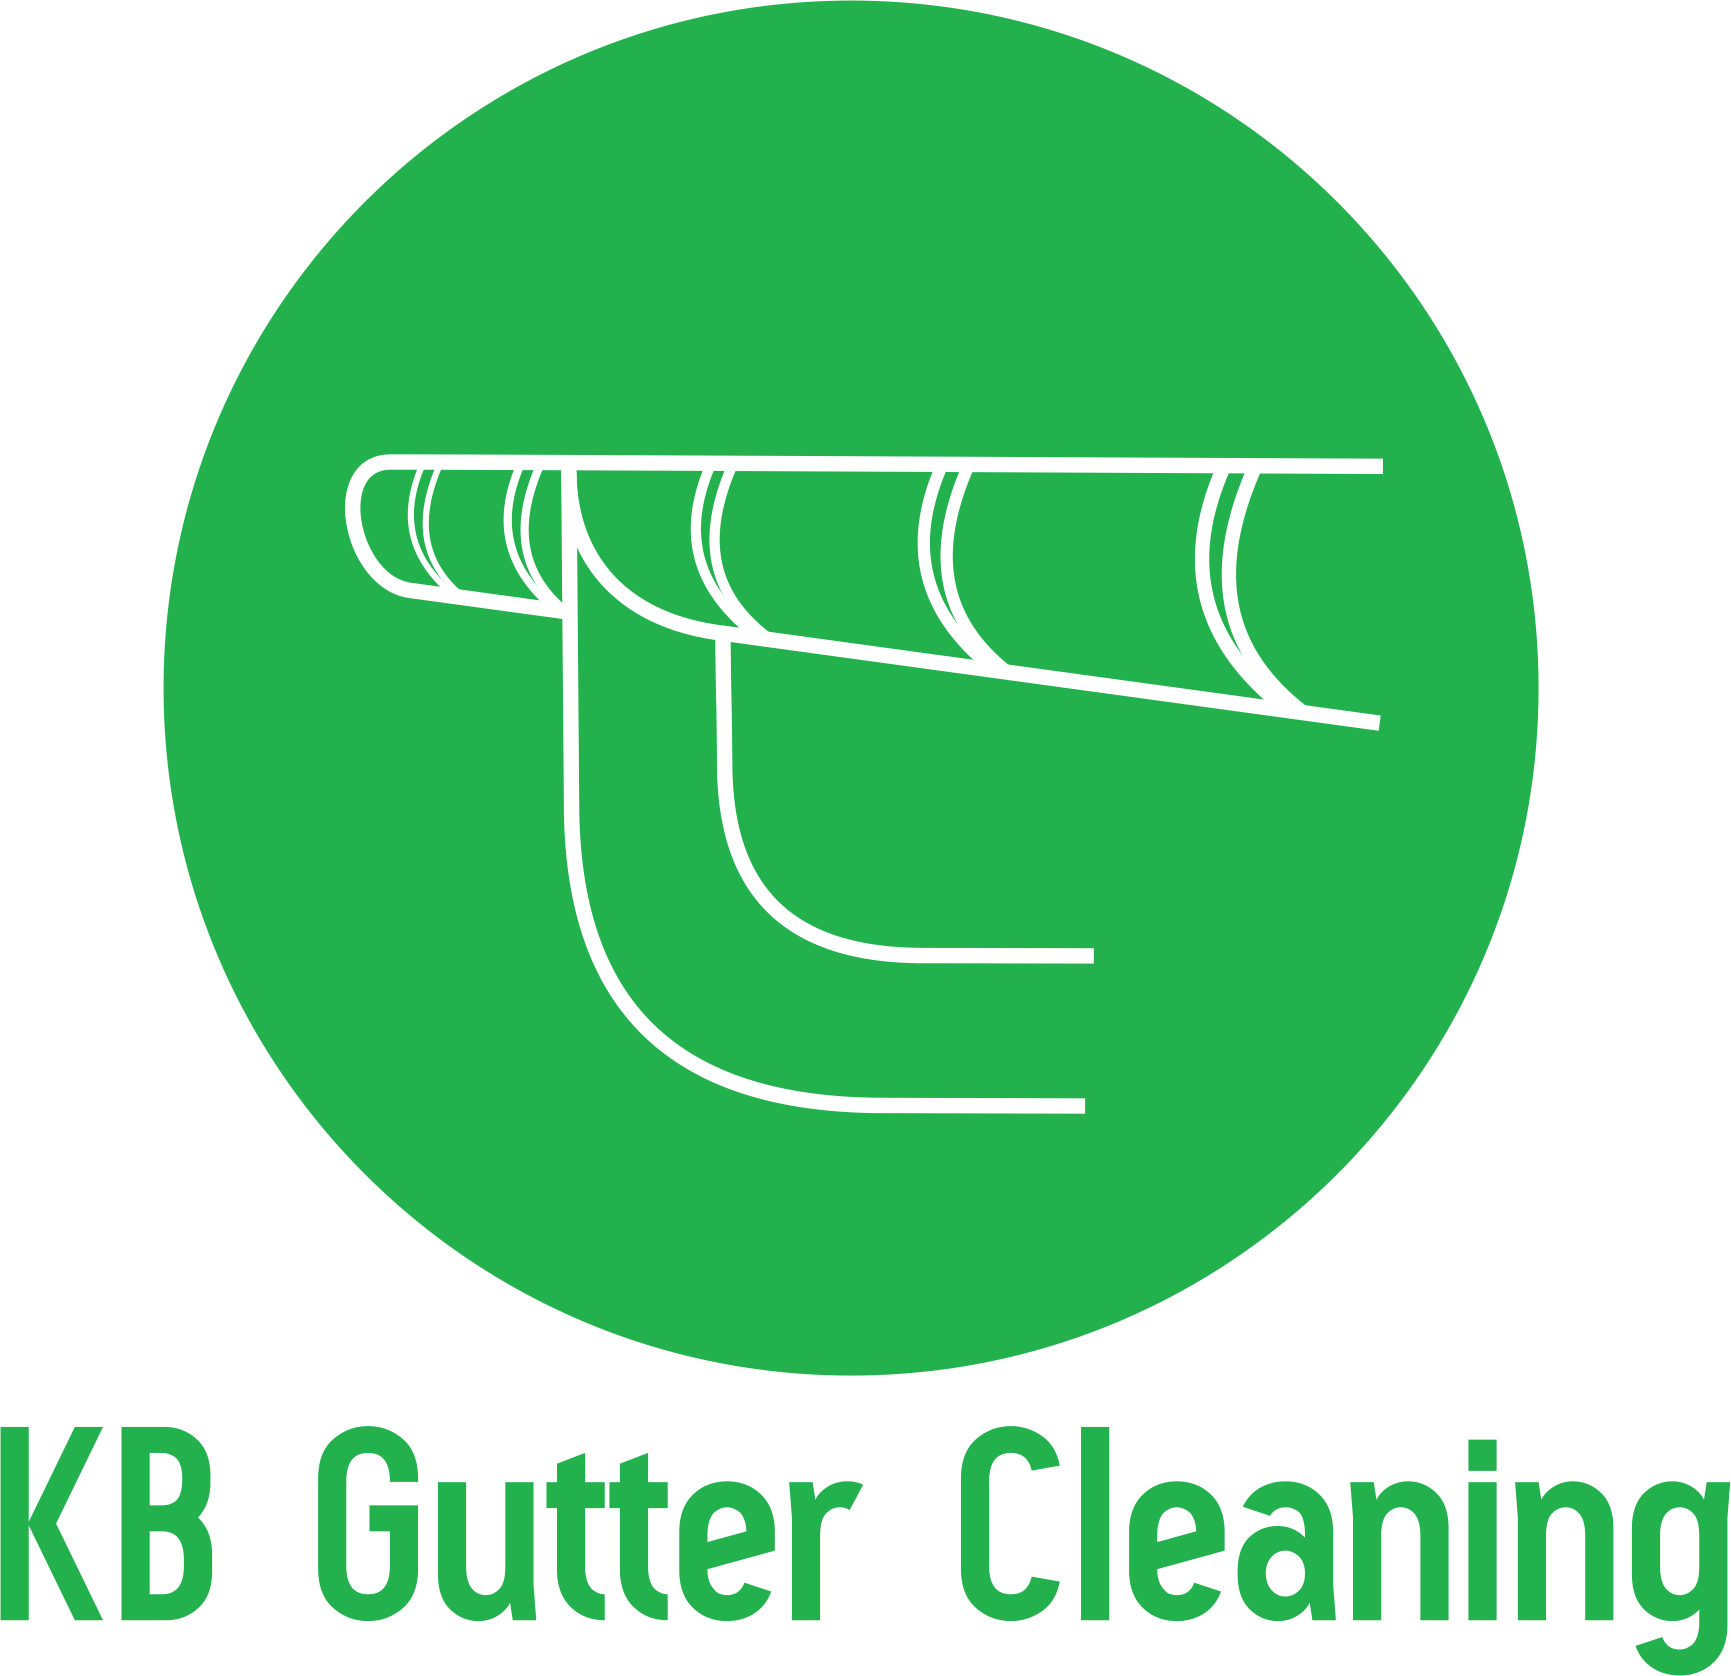 KB Gutter Cleaning